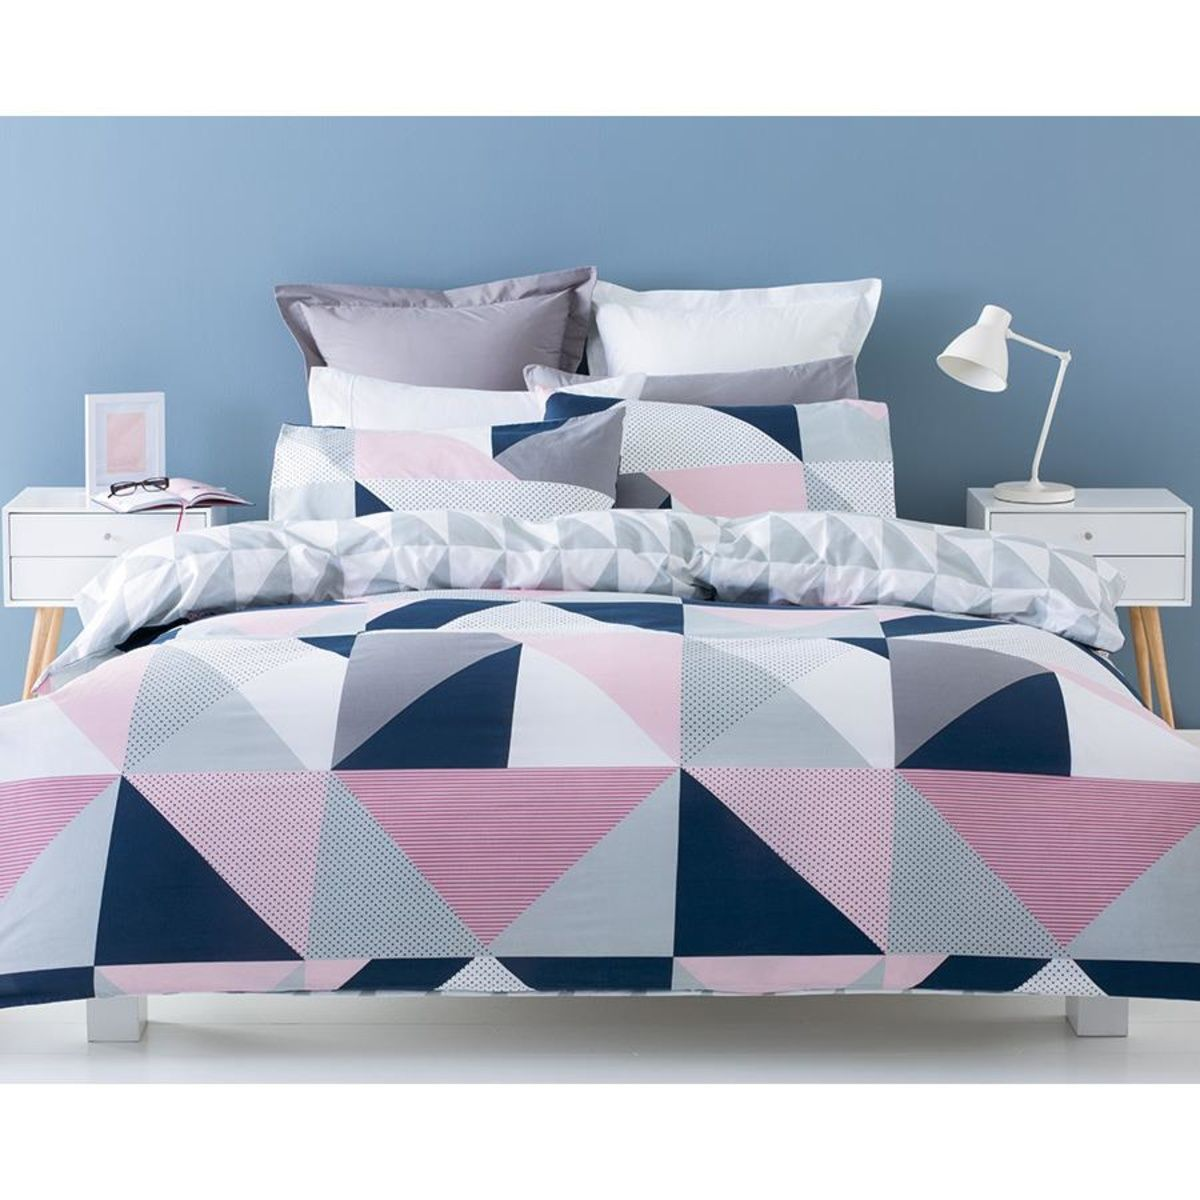 Single Doona Cover Jasper Reversible Quilt Cover Set Single Bed Kmart Geos